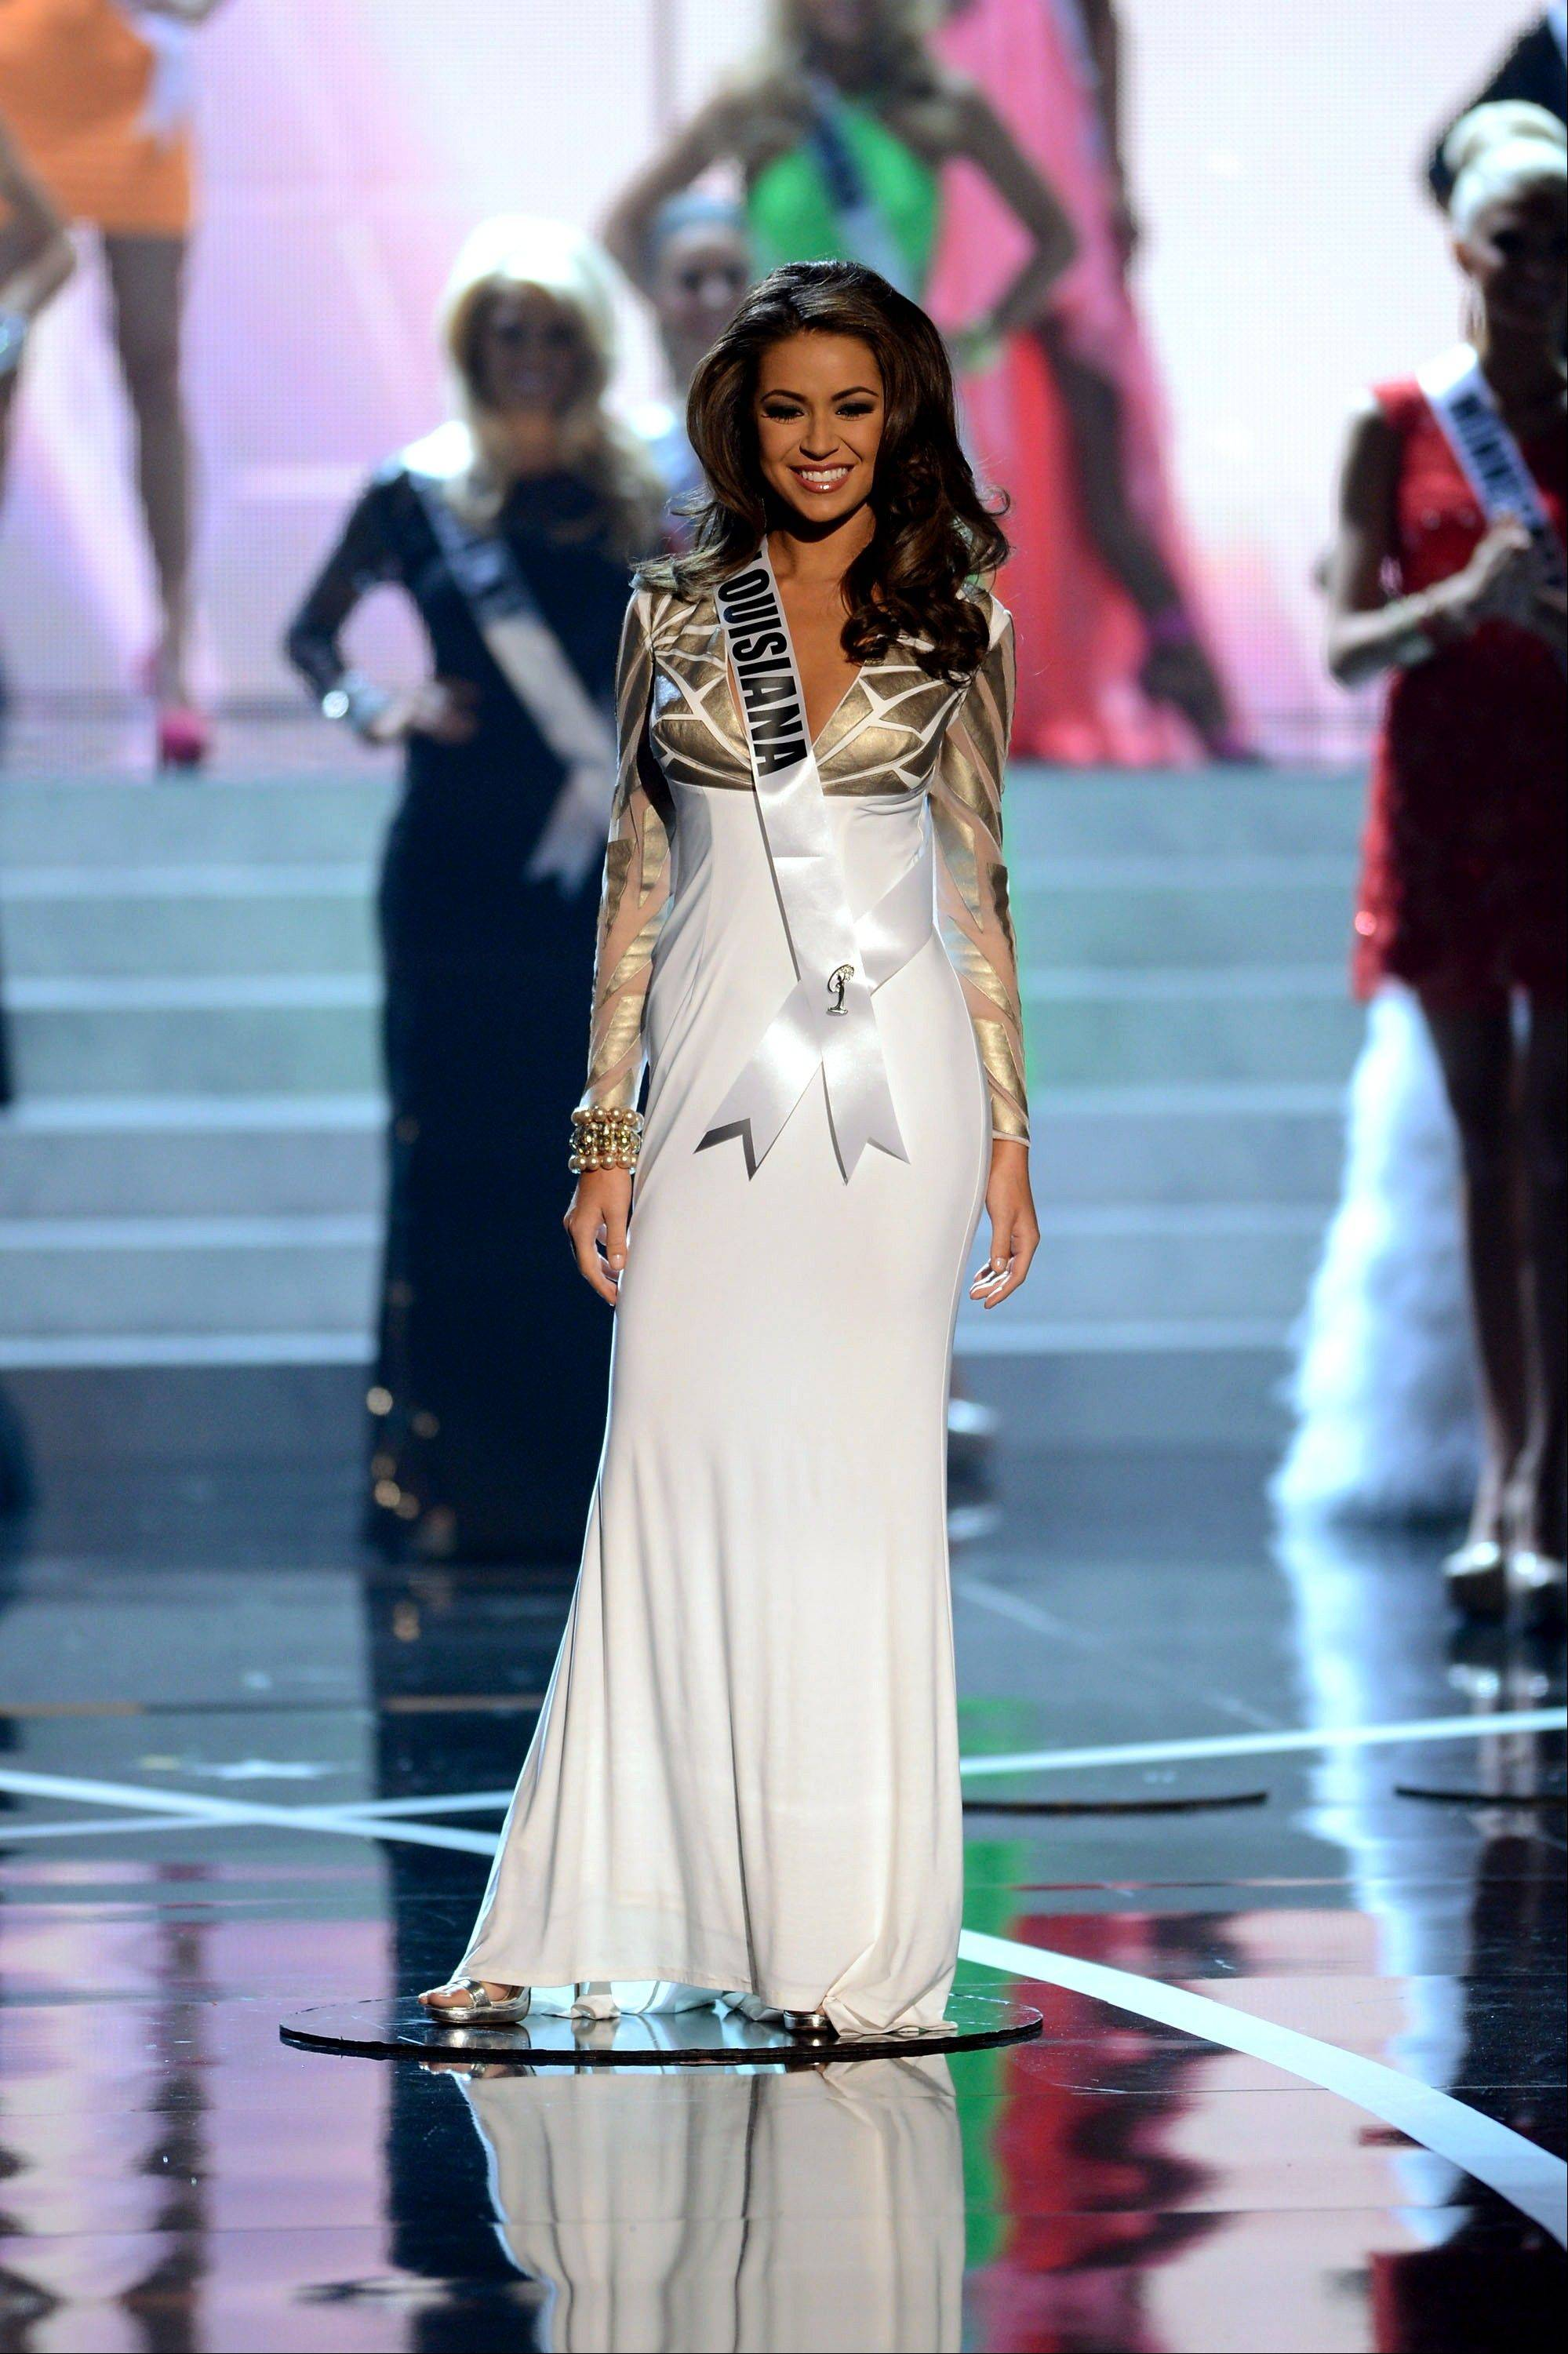 Miss Louisiana Kristen Girault from Metairie walks the runway during the introductions of the Miss USA 2013 pageant, Sunday, June 16, 2013, in Las Vegas.